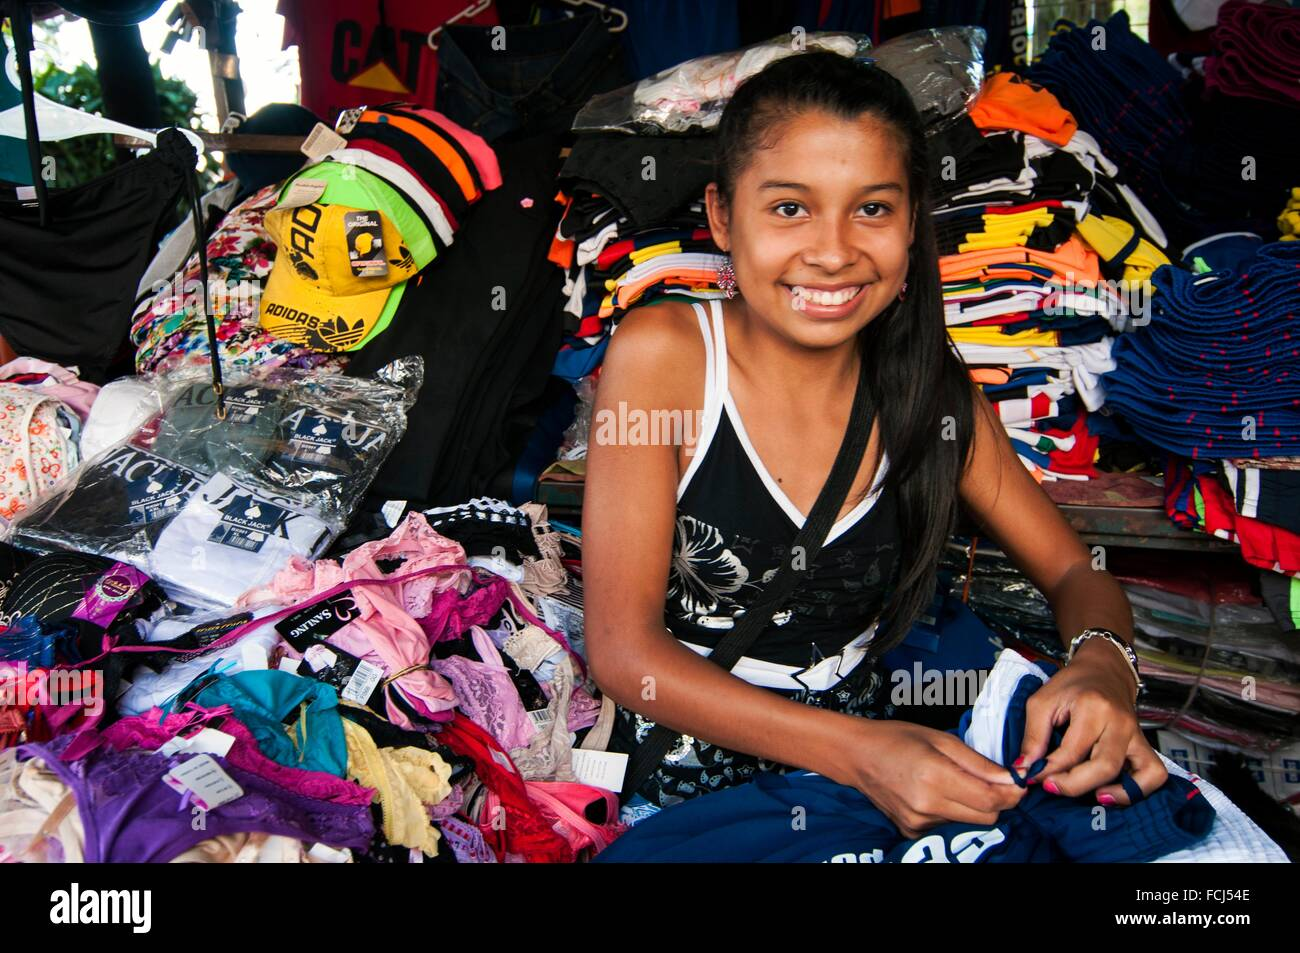 young shop assistant clothing stall av monsenor rodriguez cbd young shop assistant clothing stall av monsenor rodriguez cbd ciudad del este